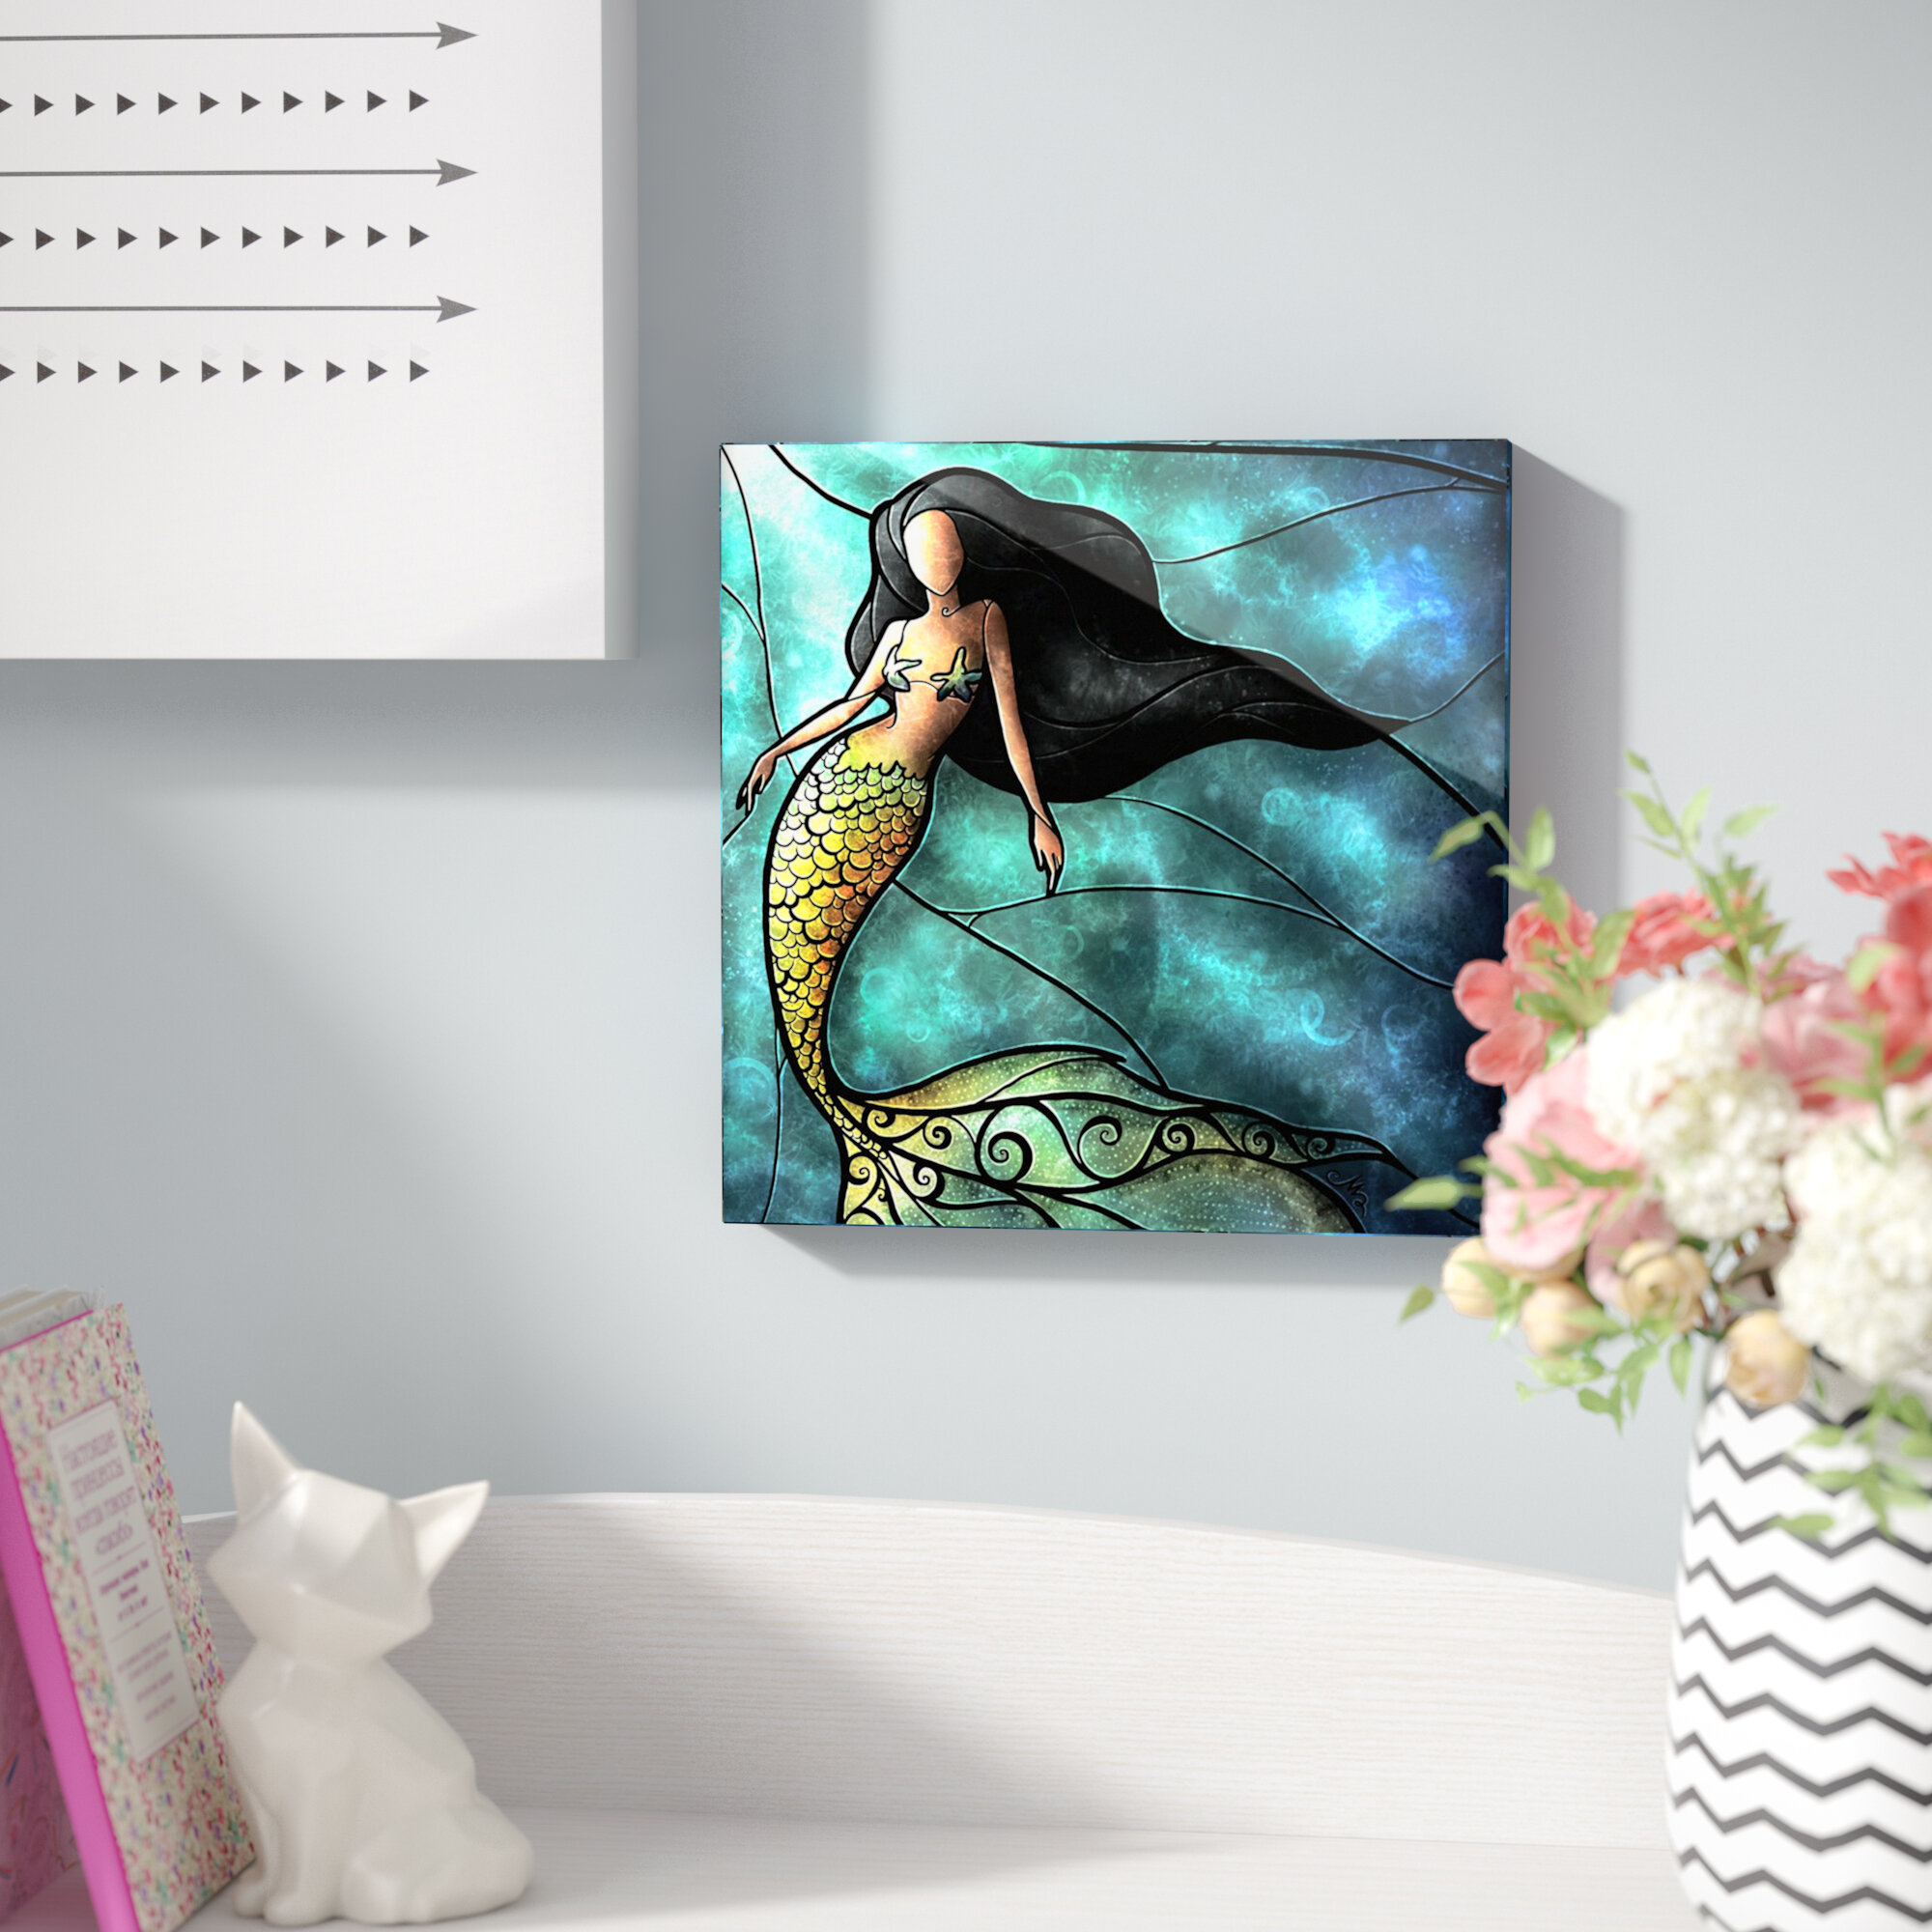 East Urban Home \'Mermaid\' Graphic Art Print on Metal | Wayfair